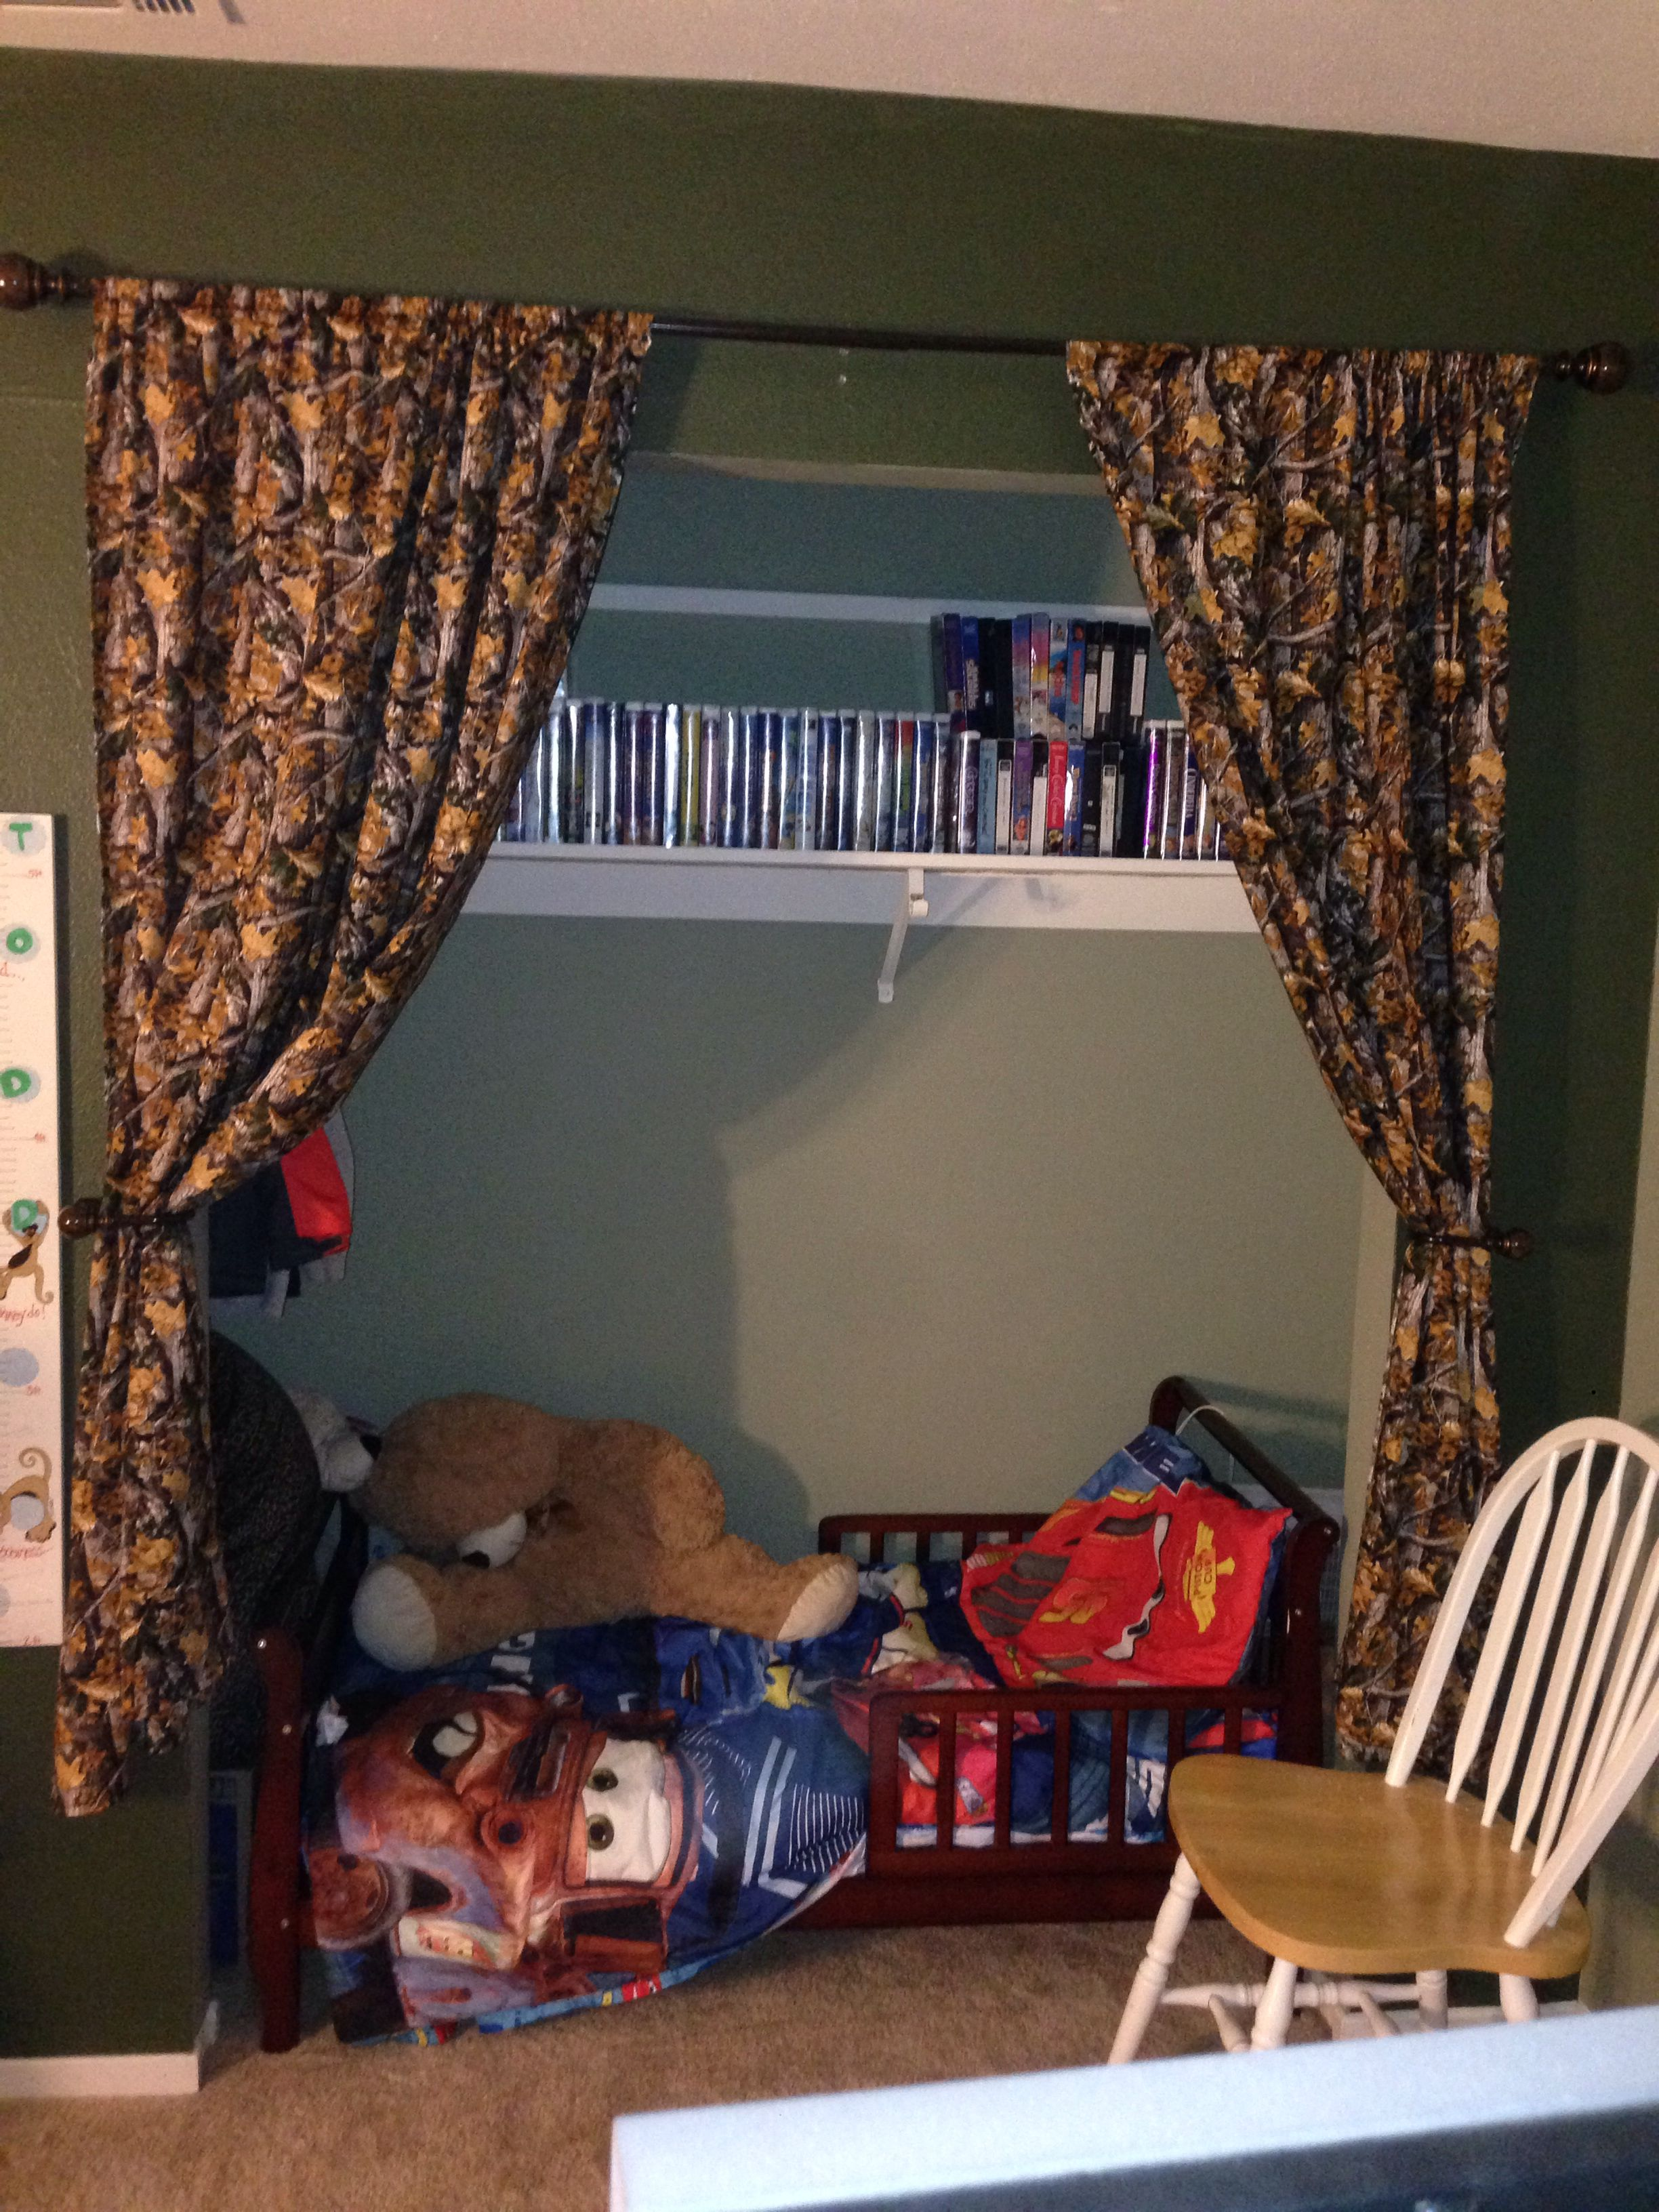 Home Made Curtains Shelves Toddler Bed In Closet Nursery To Room